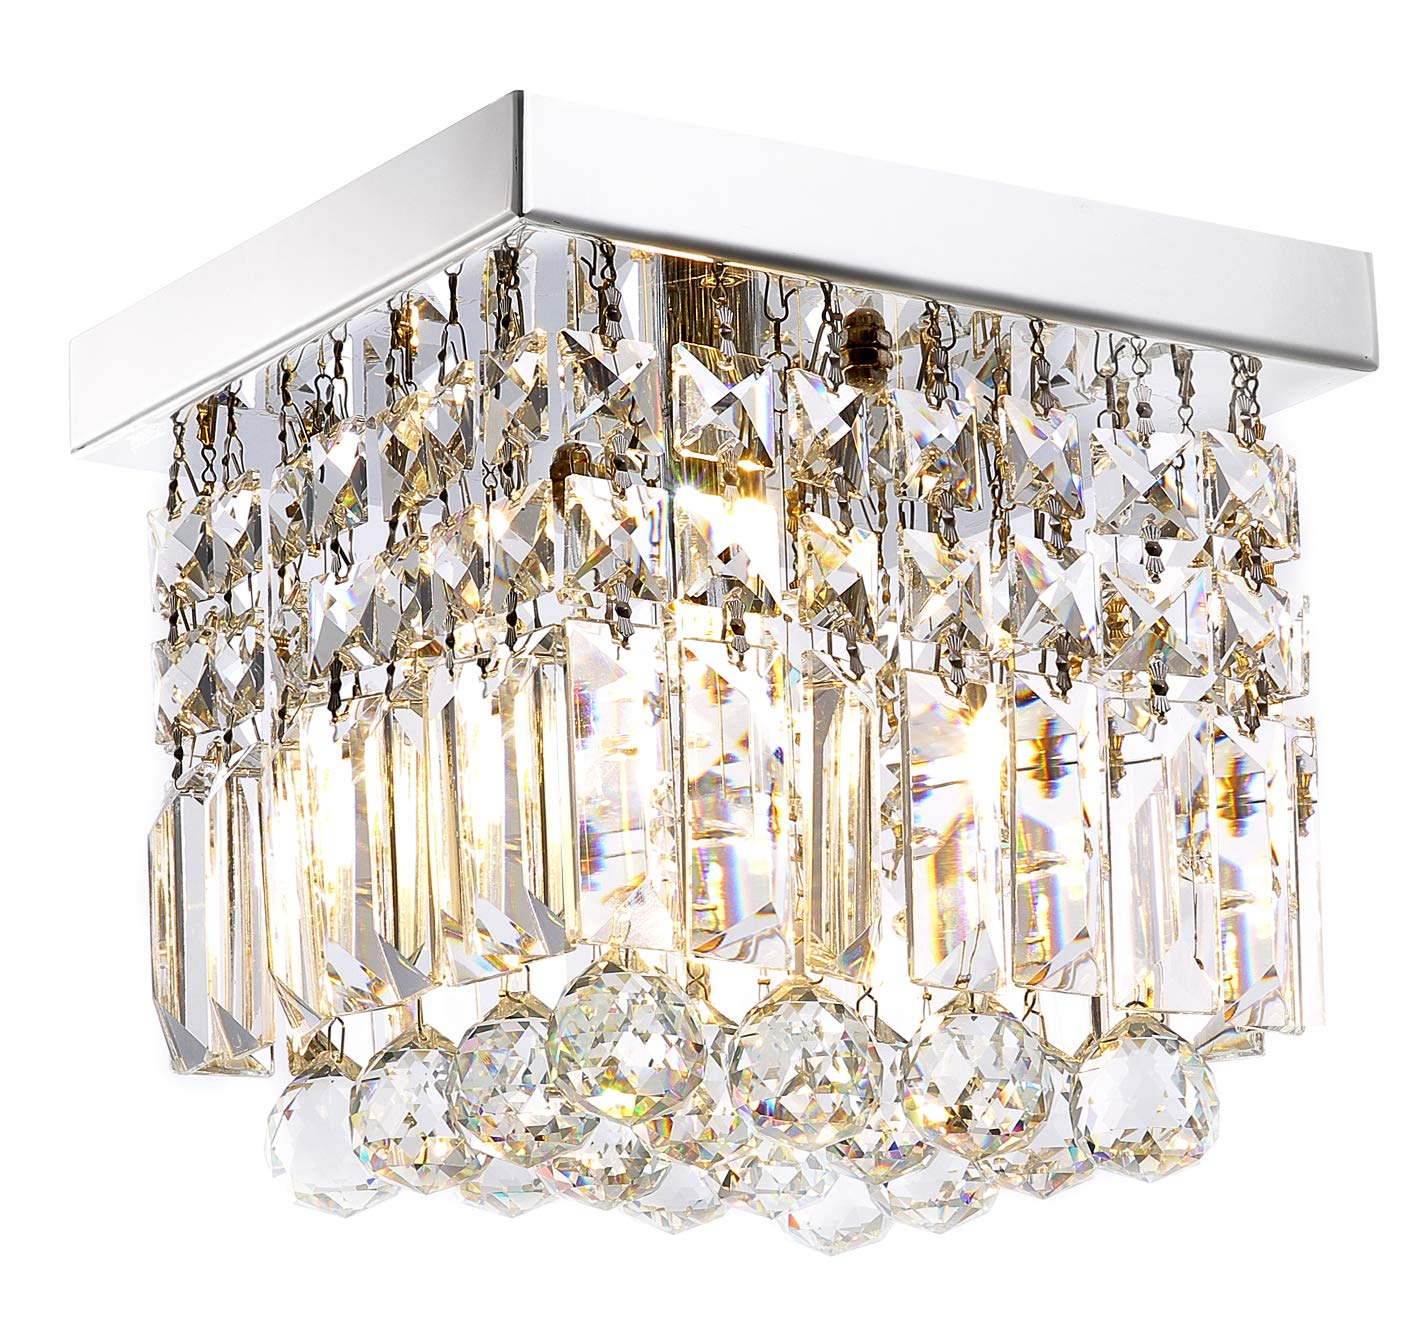 Moooni Hallway Crystal Chandelier 1 Light W8 Mini Modern Square Parts Diagram What Make Up A Flush Mount Ceiling Fixture